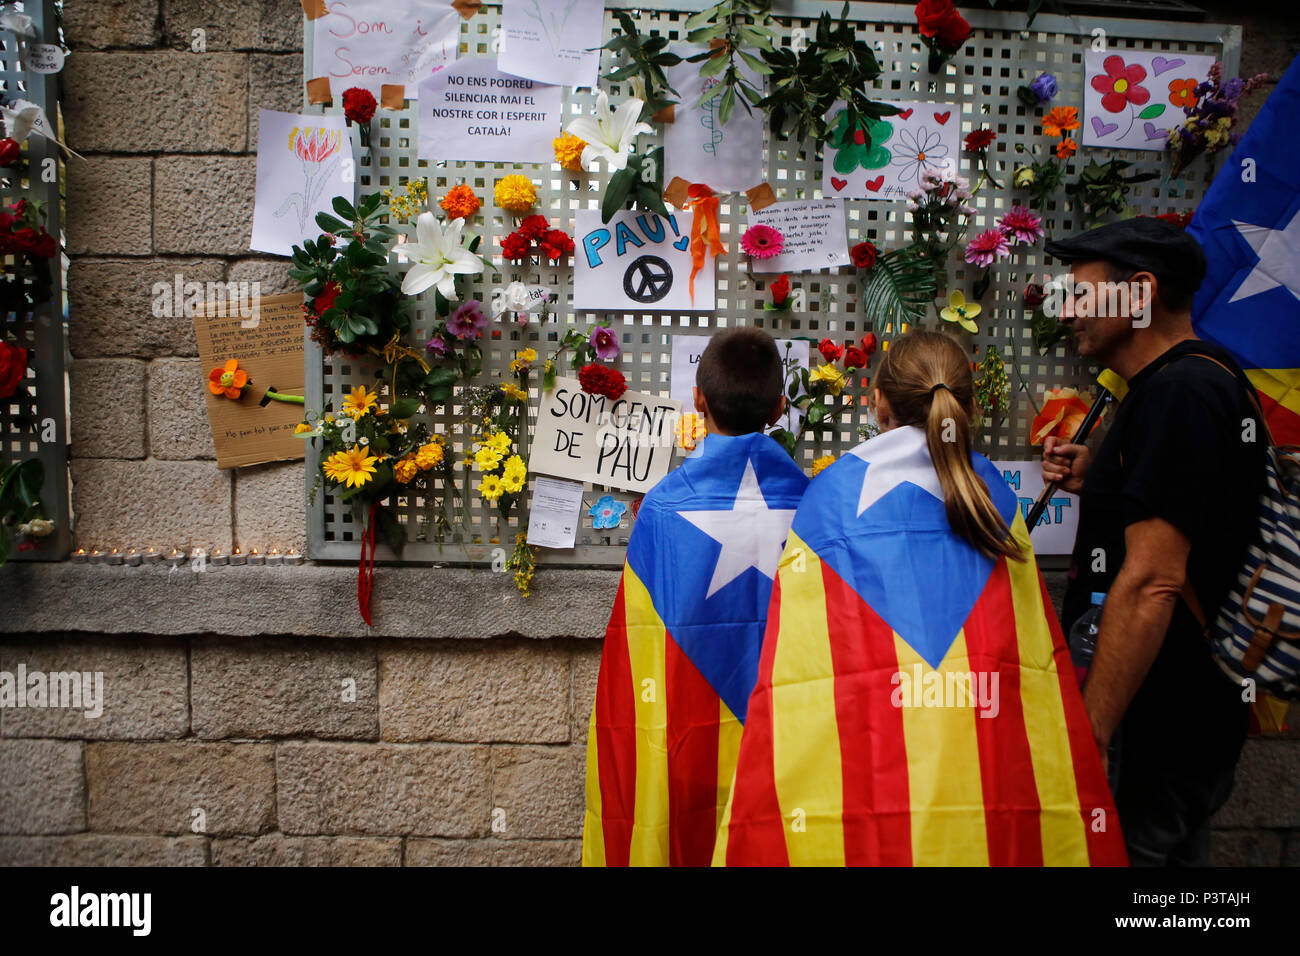 Girona, Catalonia, Spain - Mourning for Violent Police Operation on the Day of the Referendum on Independence - Stock Image